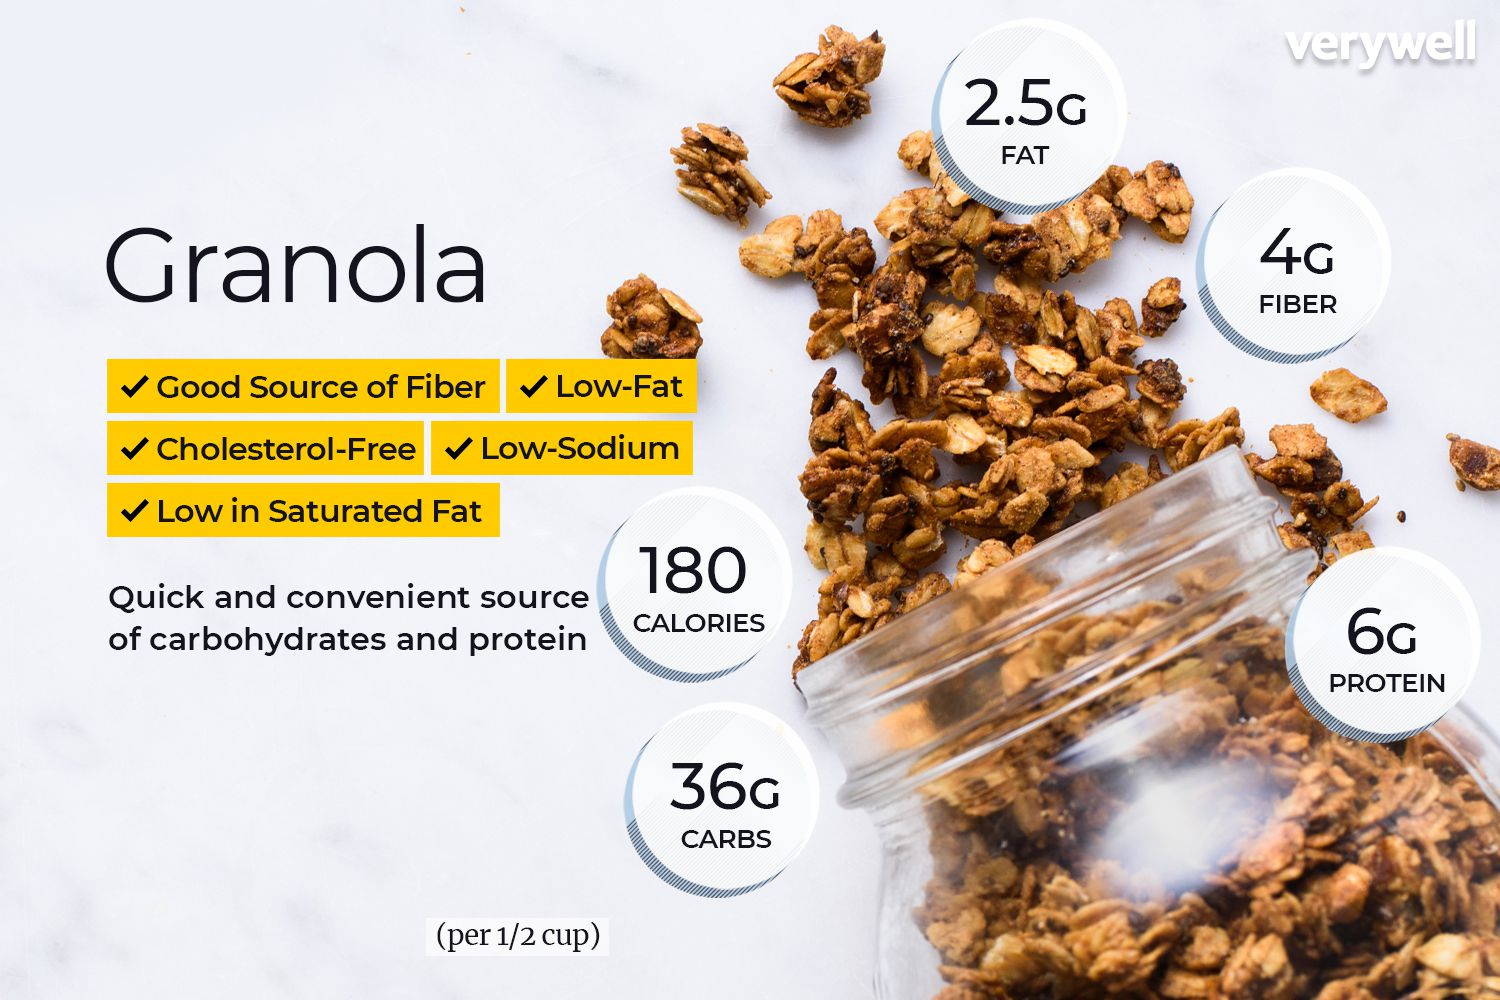 Incredible Granola Nutrition Facts Calories Carbs And Health Benefits Home Interior And Landscaping Oversignezvosmurscom